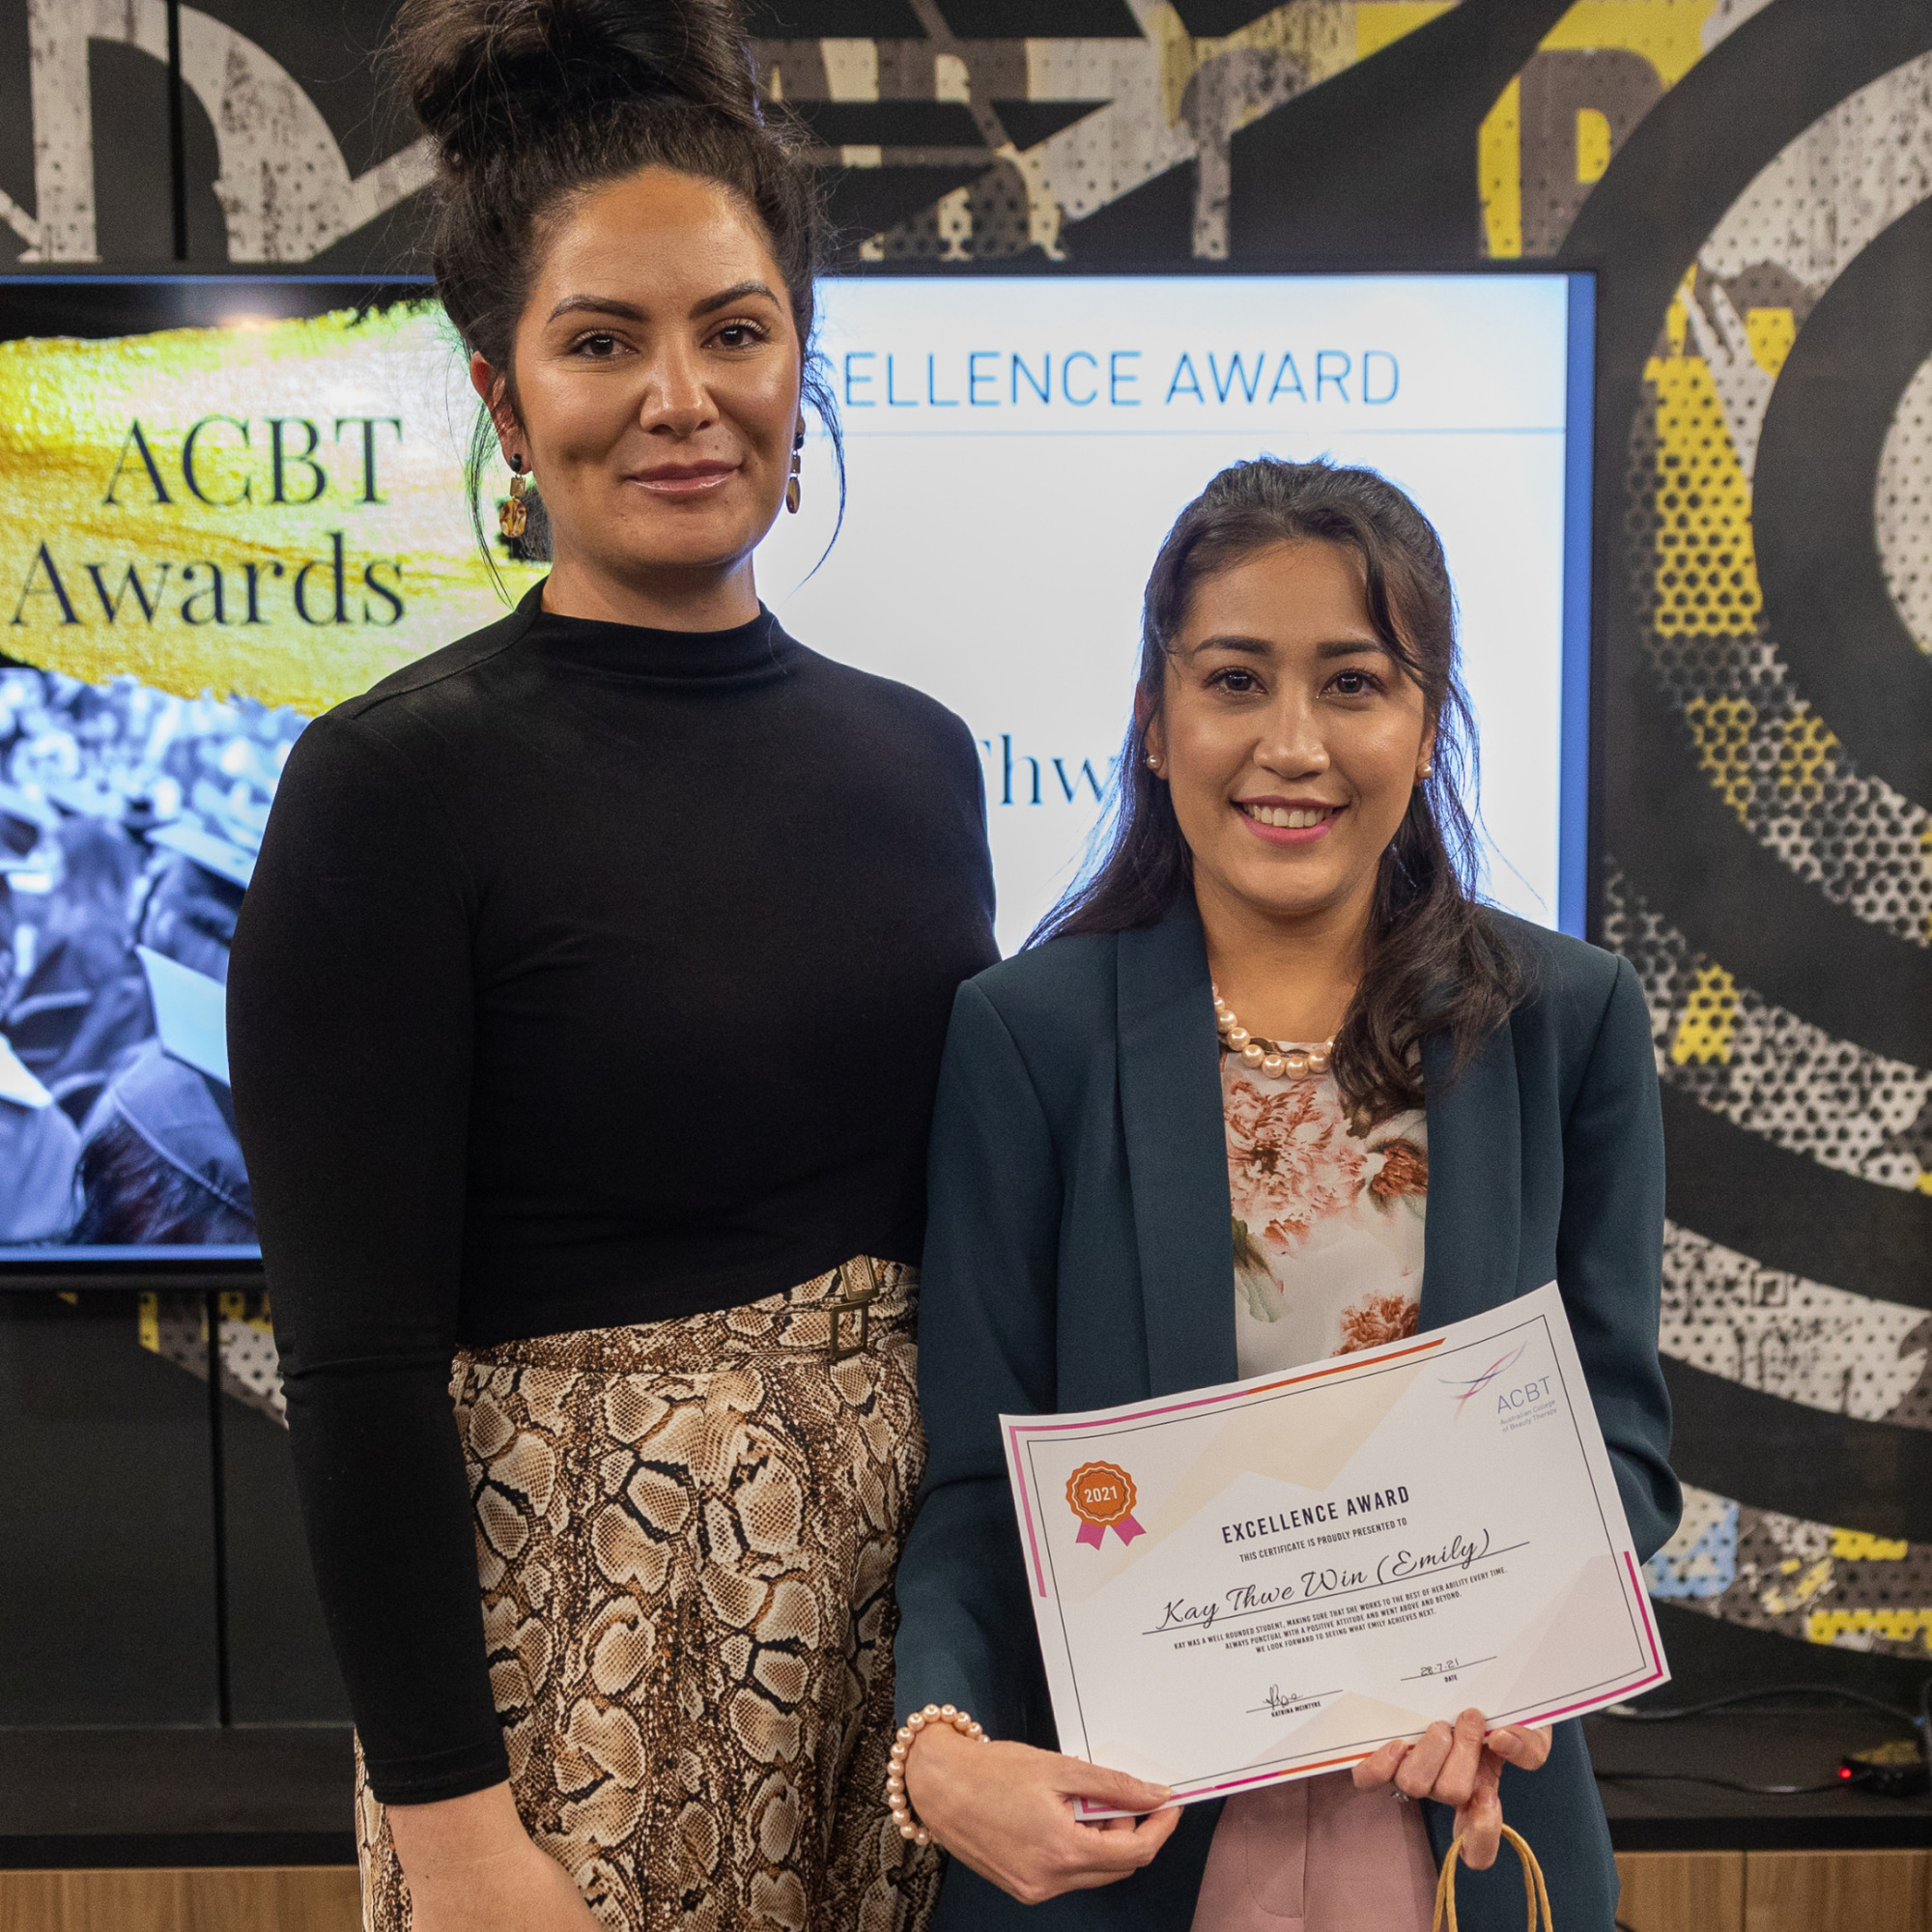 ACBT Graduate, Kay Thwe Win (Emily), accepting her certificate from lecturer, Haylee. Emily is wearing a blue blazer and floral top, and Haylee is wearing a black long sleeved top with pants. Both ladies are smiling.